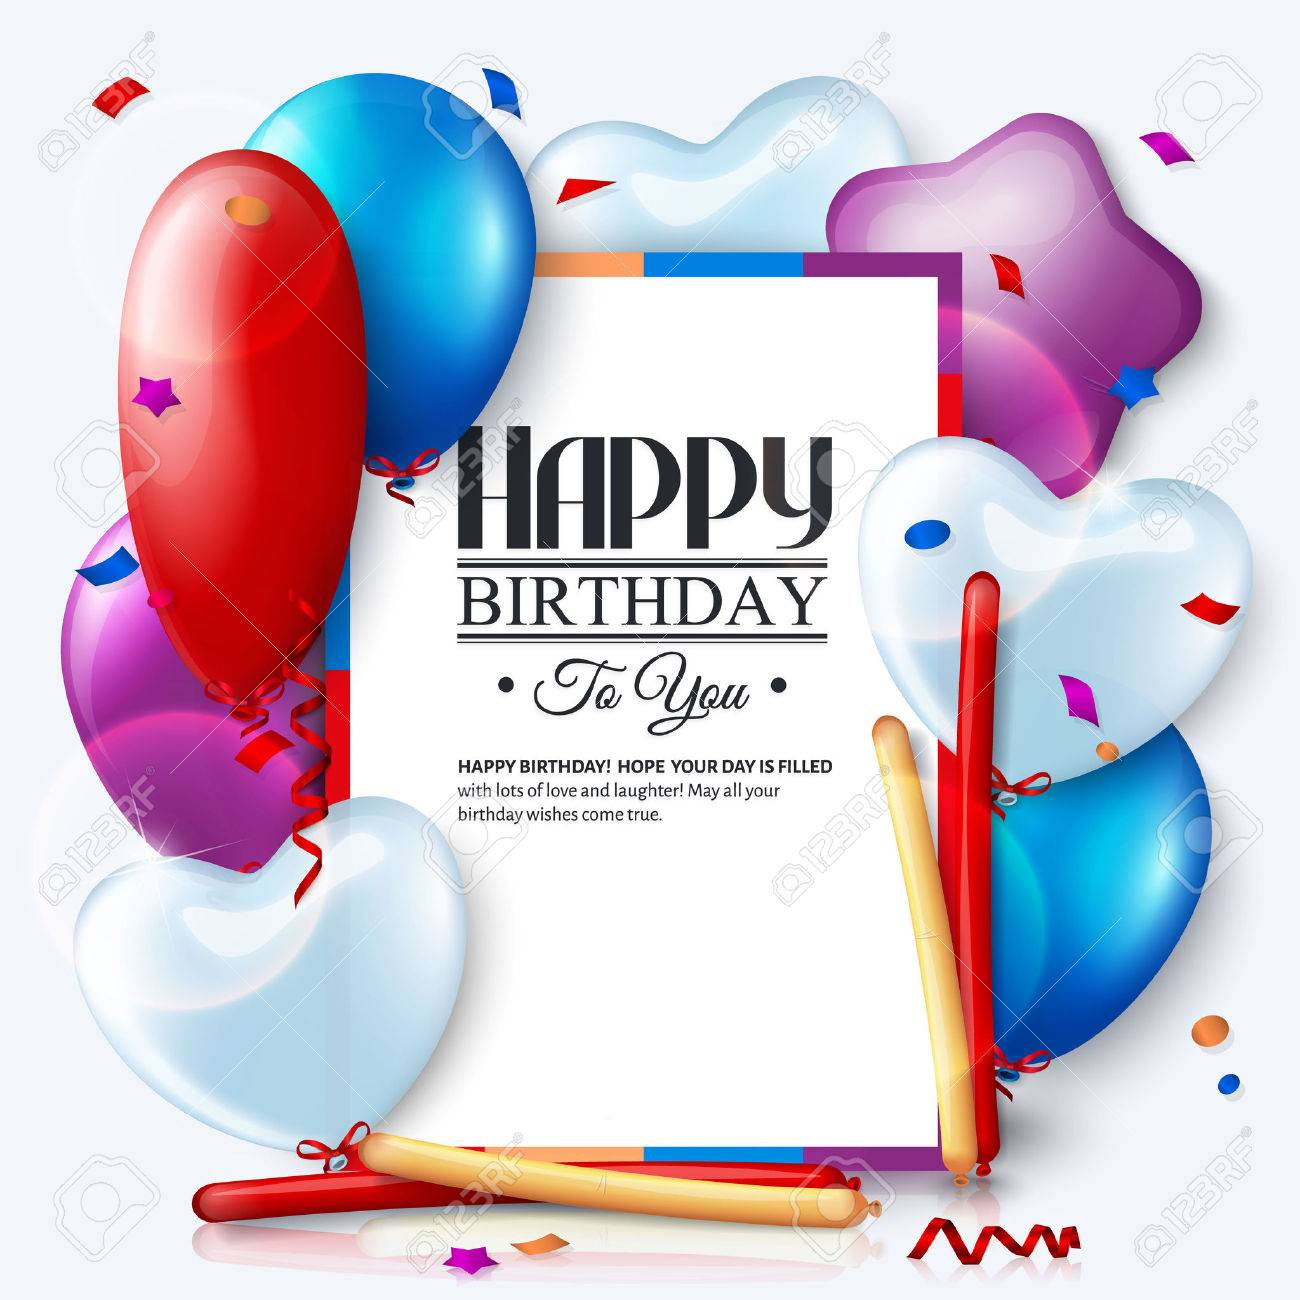 Birthday card with colorful balloons and confetti. - 35092473